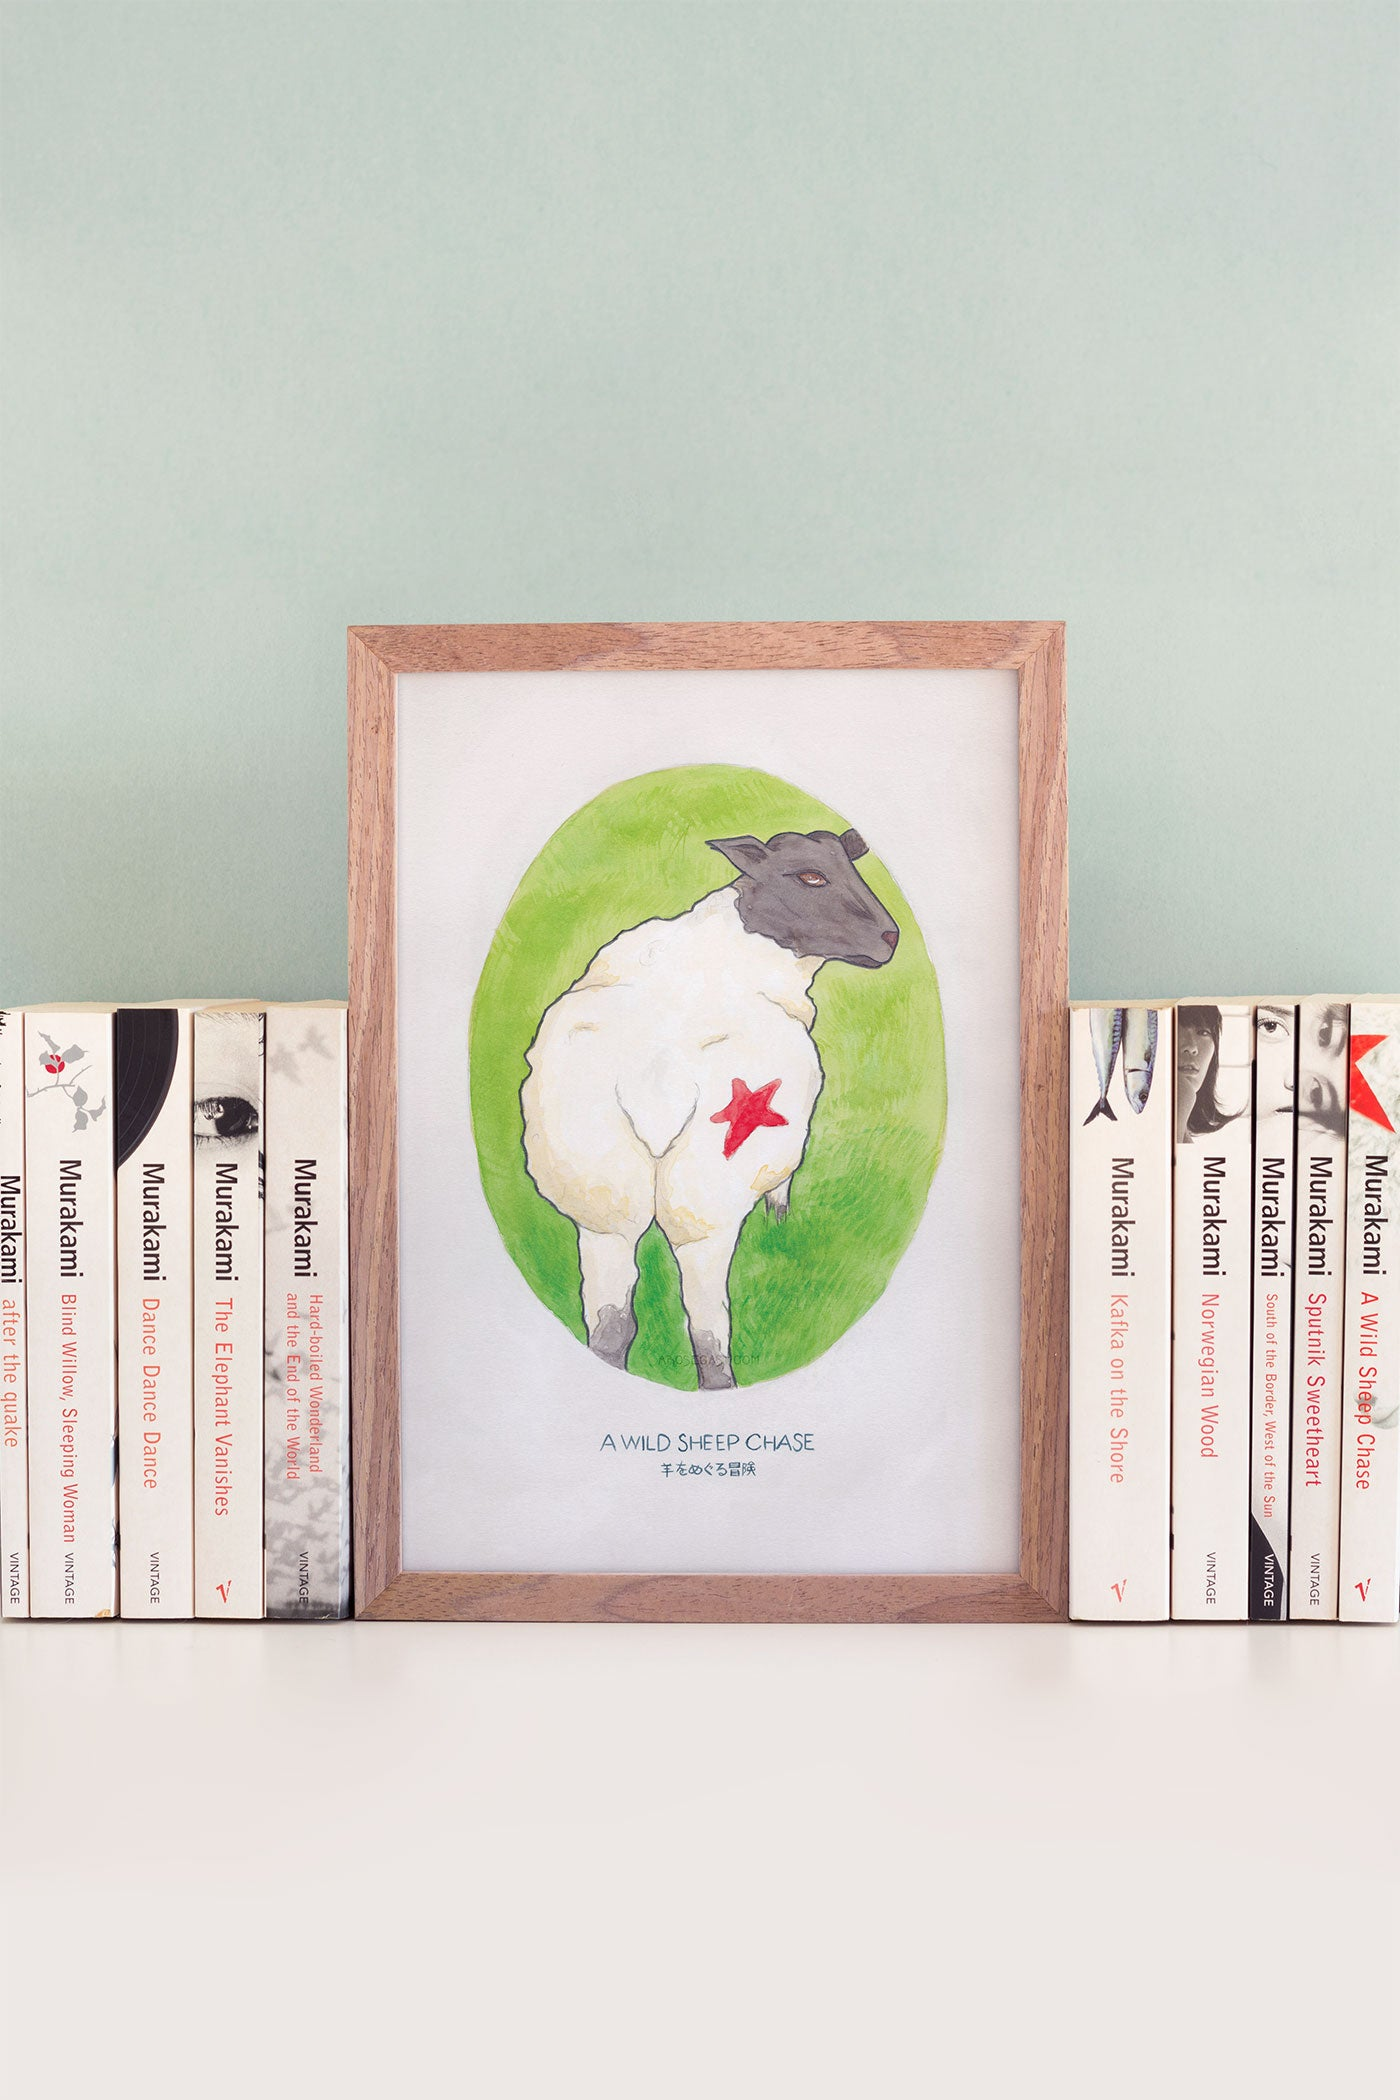 Haruki Murakami's A Wild Sheep Chase Novel Illustration Art Print - A Rose Cast